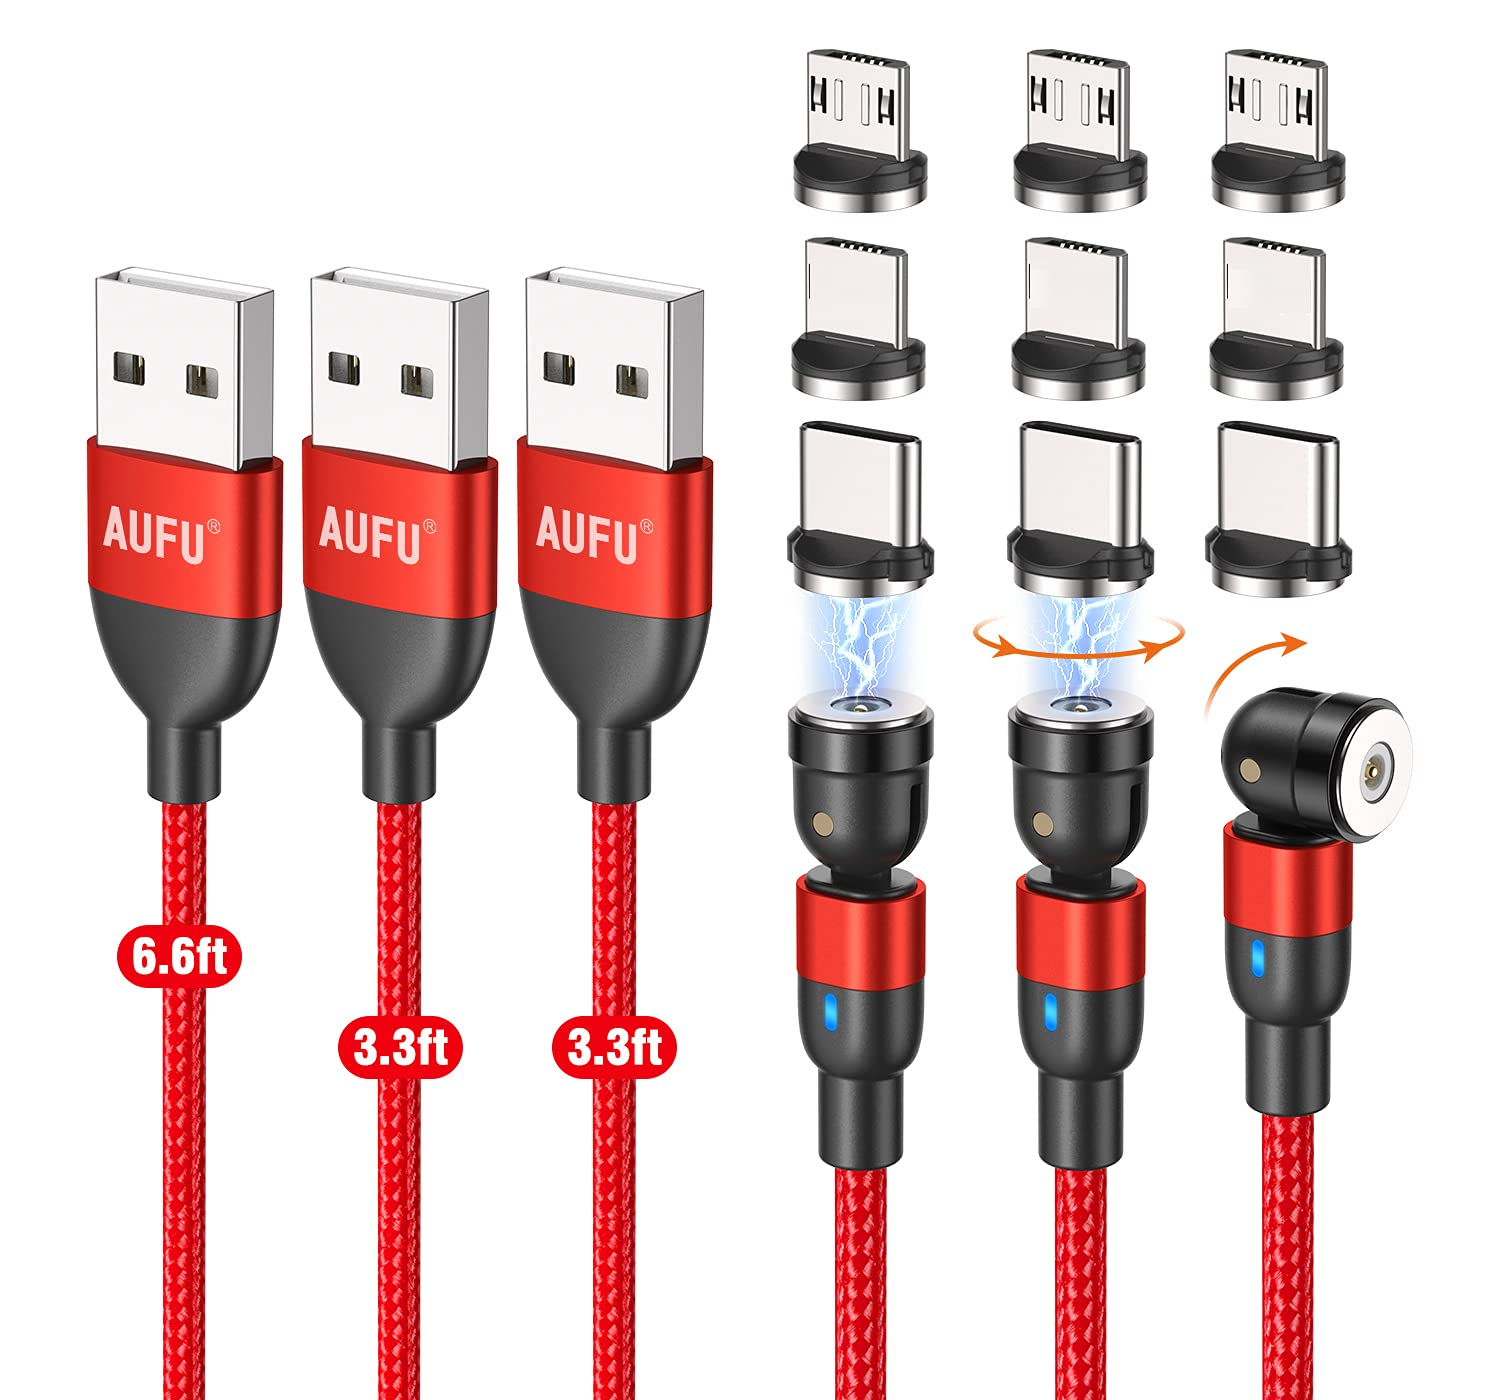 540 Degree Magnetic Charger Phone Charging Cable USB Charger 360° & 180° Magnetic Charging Cables Compatible with Micro Type C (Red/3Pack/3.3FT/3.3FT/6.6FT)